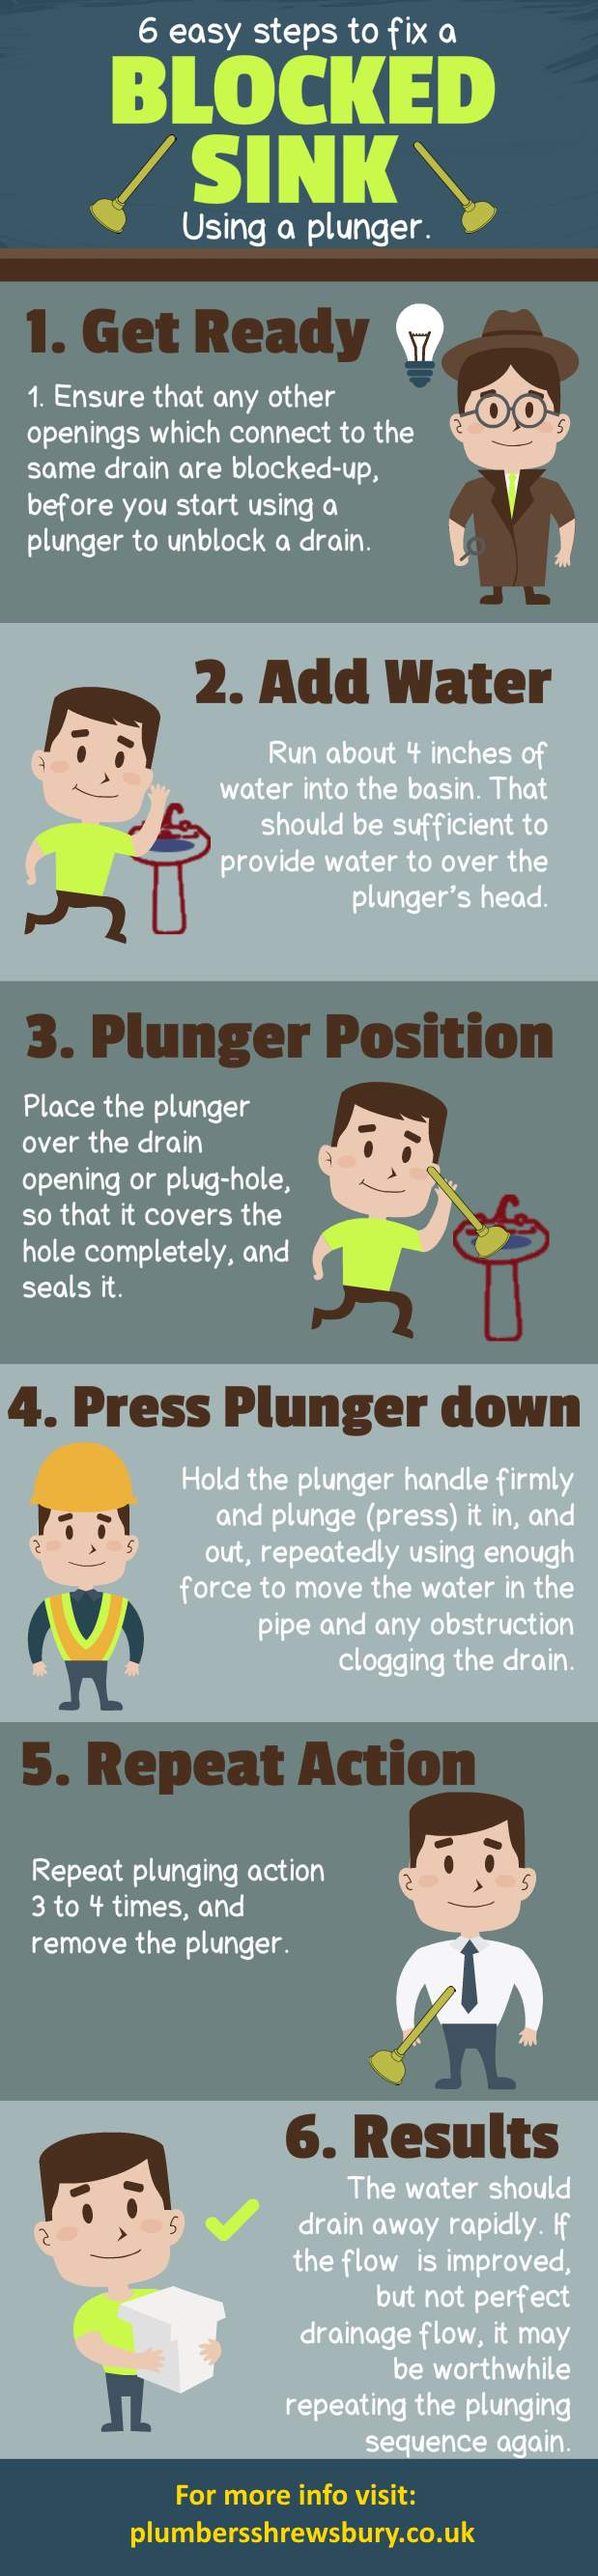 How to fix a blocked sink infographic